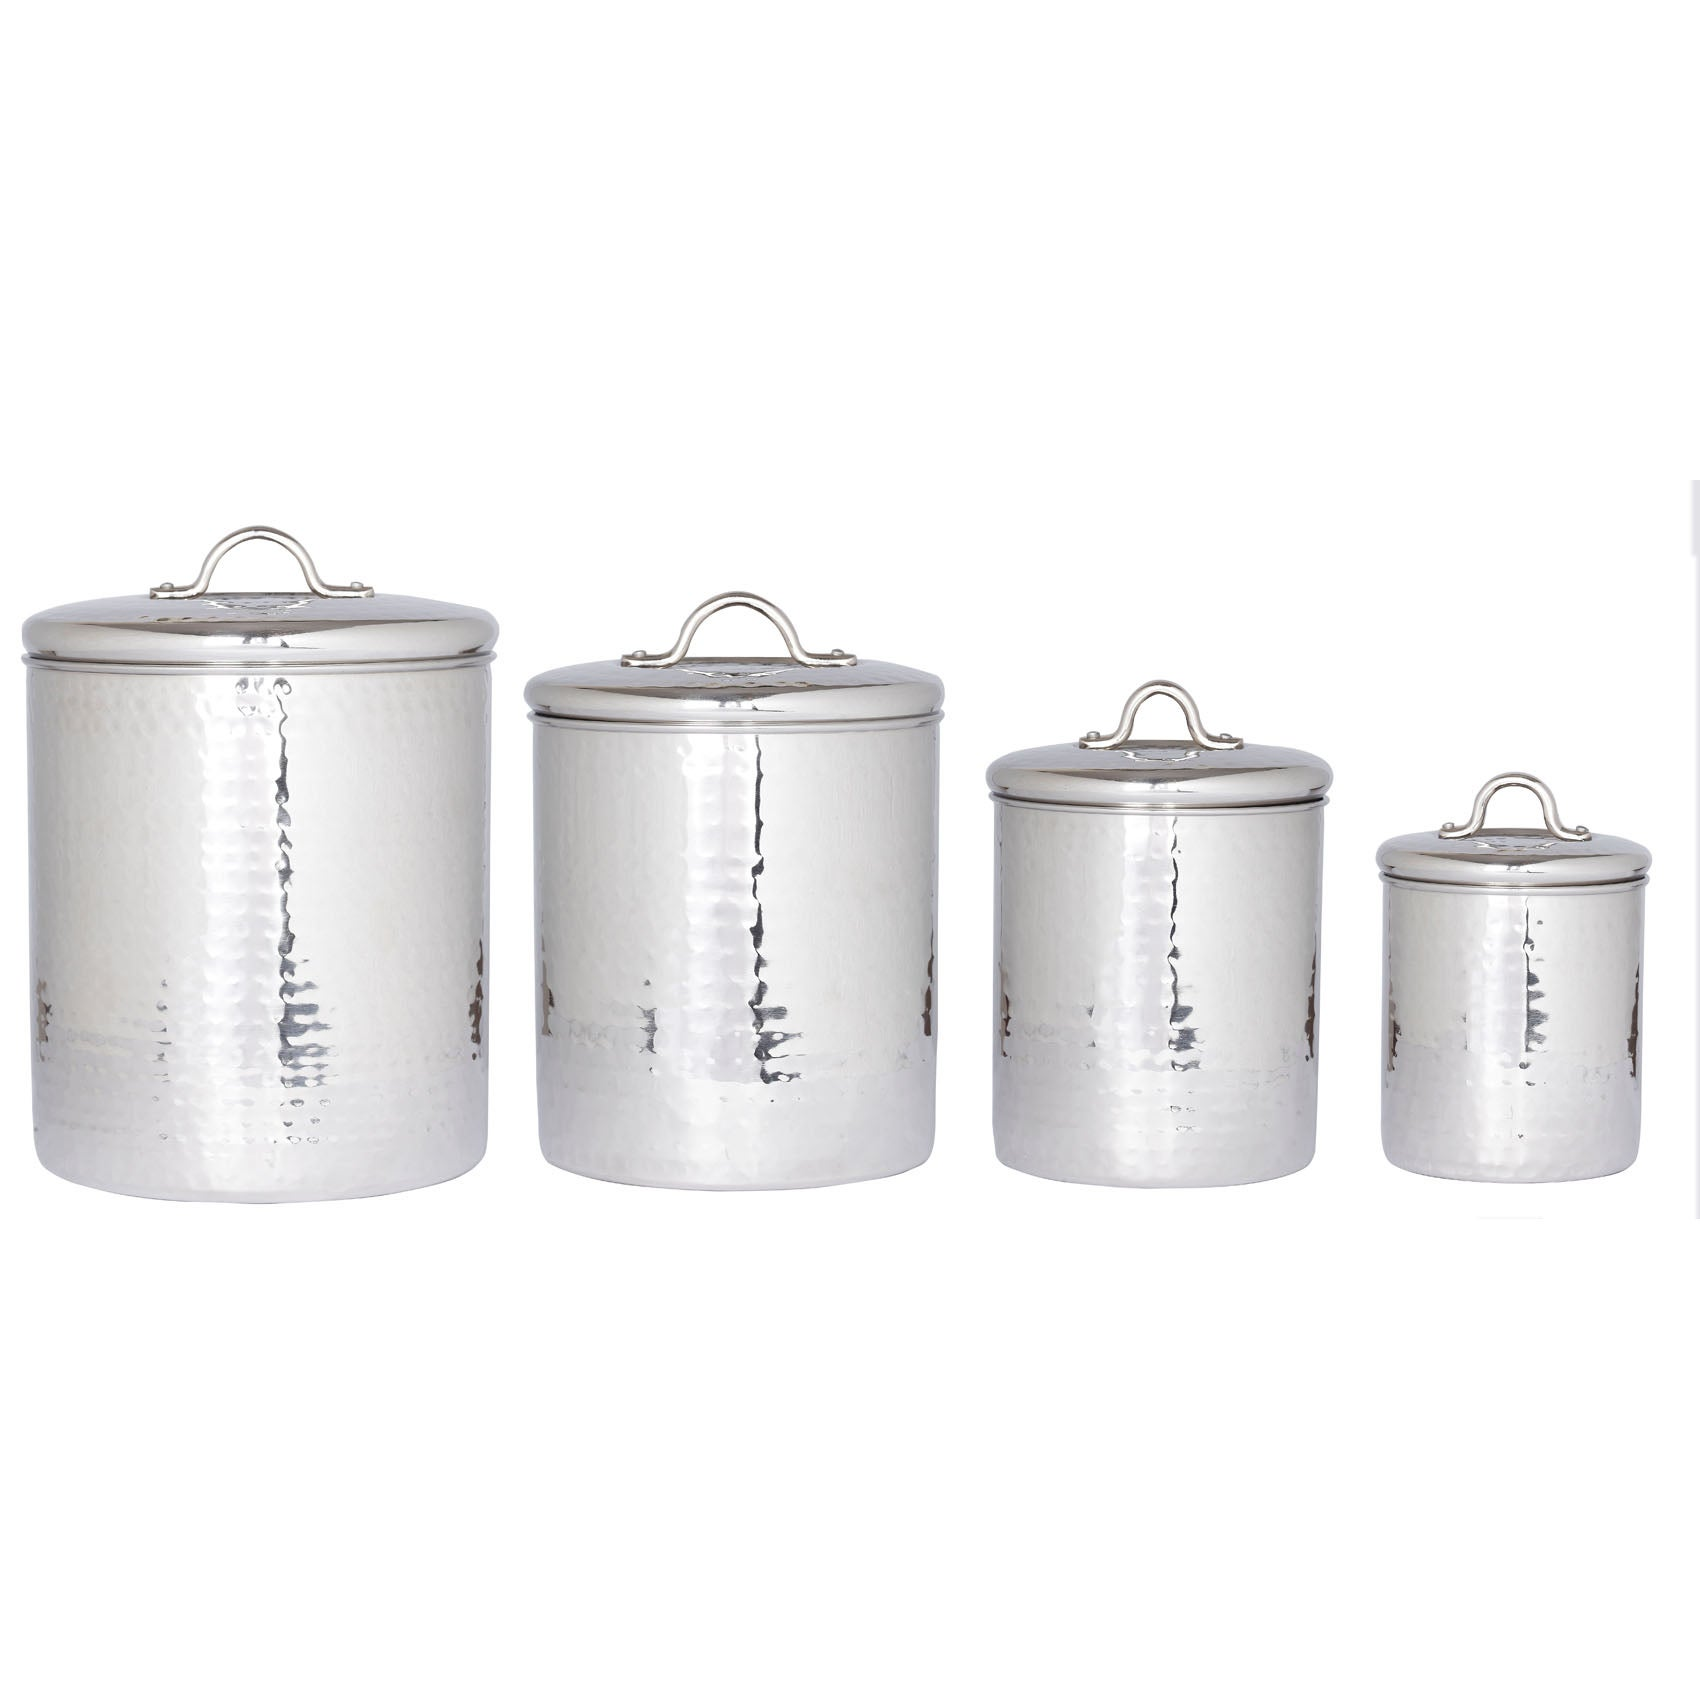 Overstock.com Old Dutch Stainless Steel Hammered Canisters (Set 4) at Sears.com